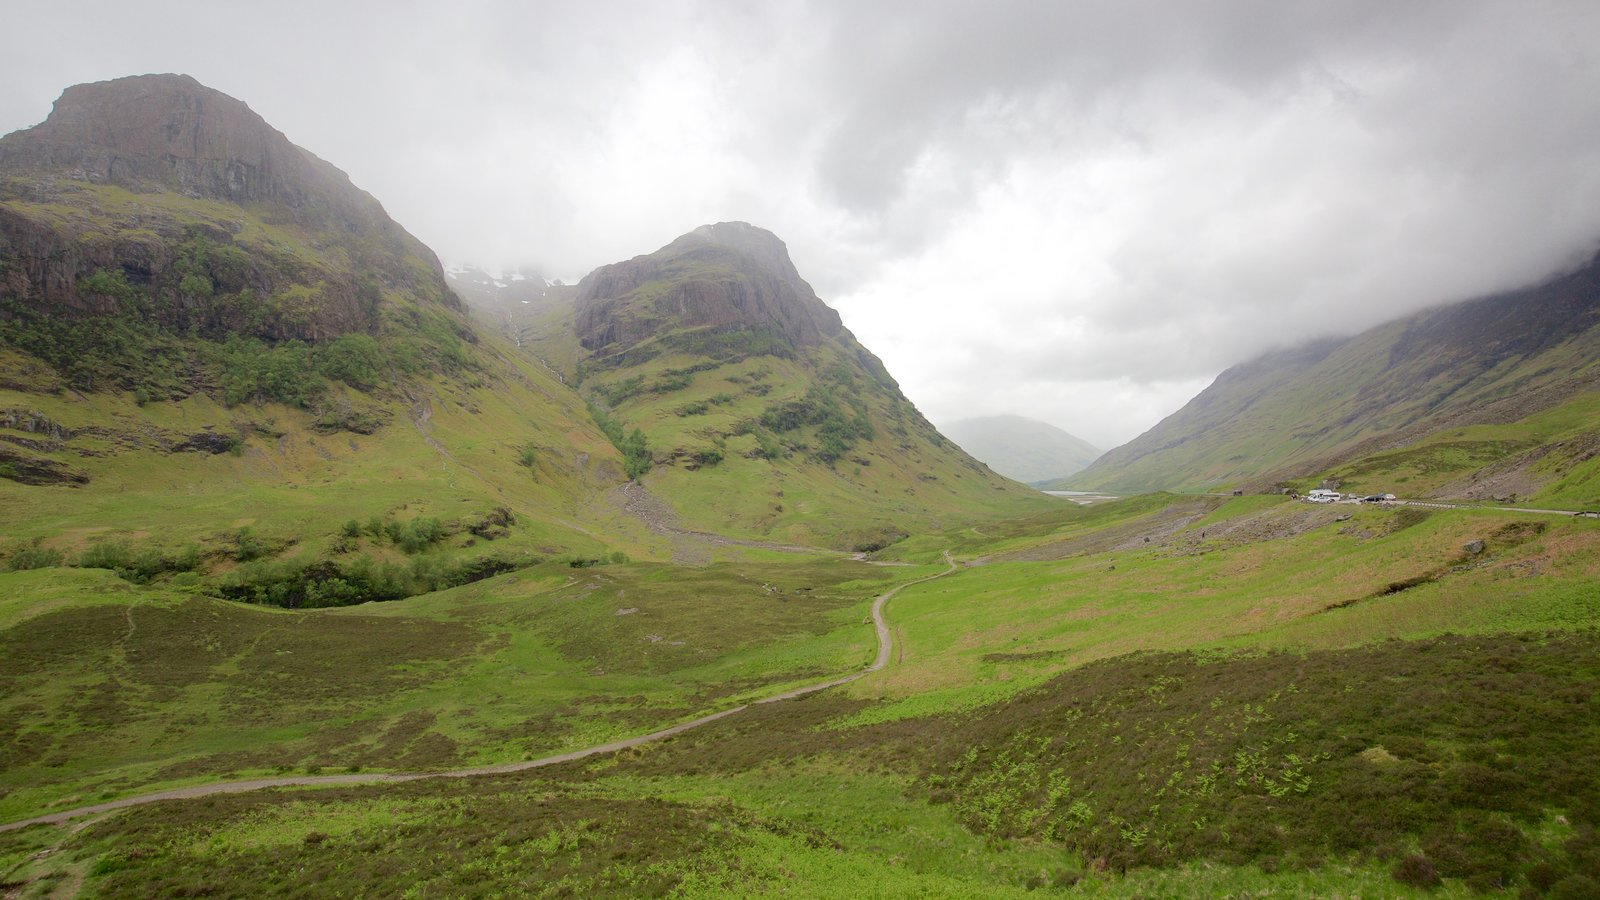 Glencoe showing mountains and tranquil scenes